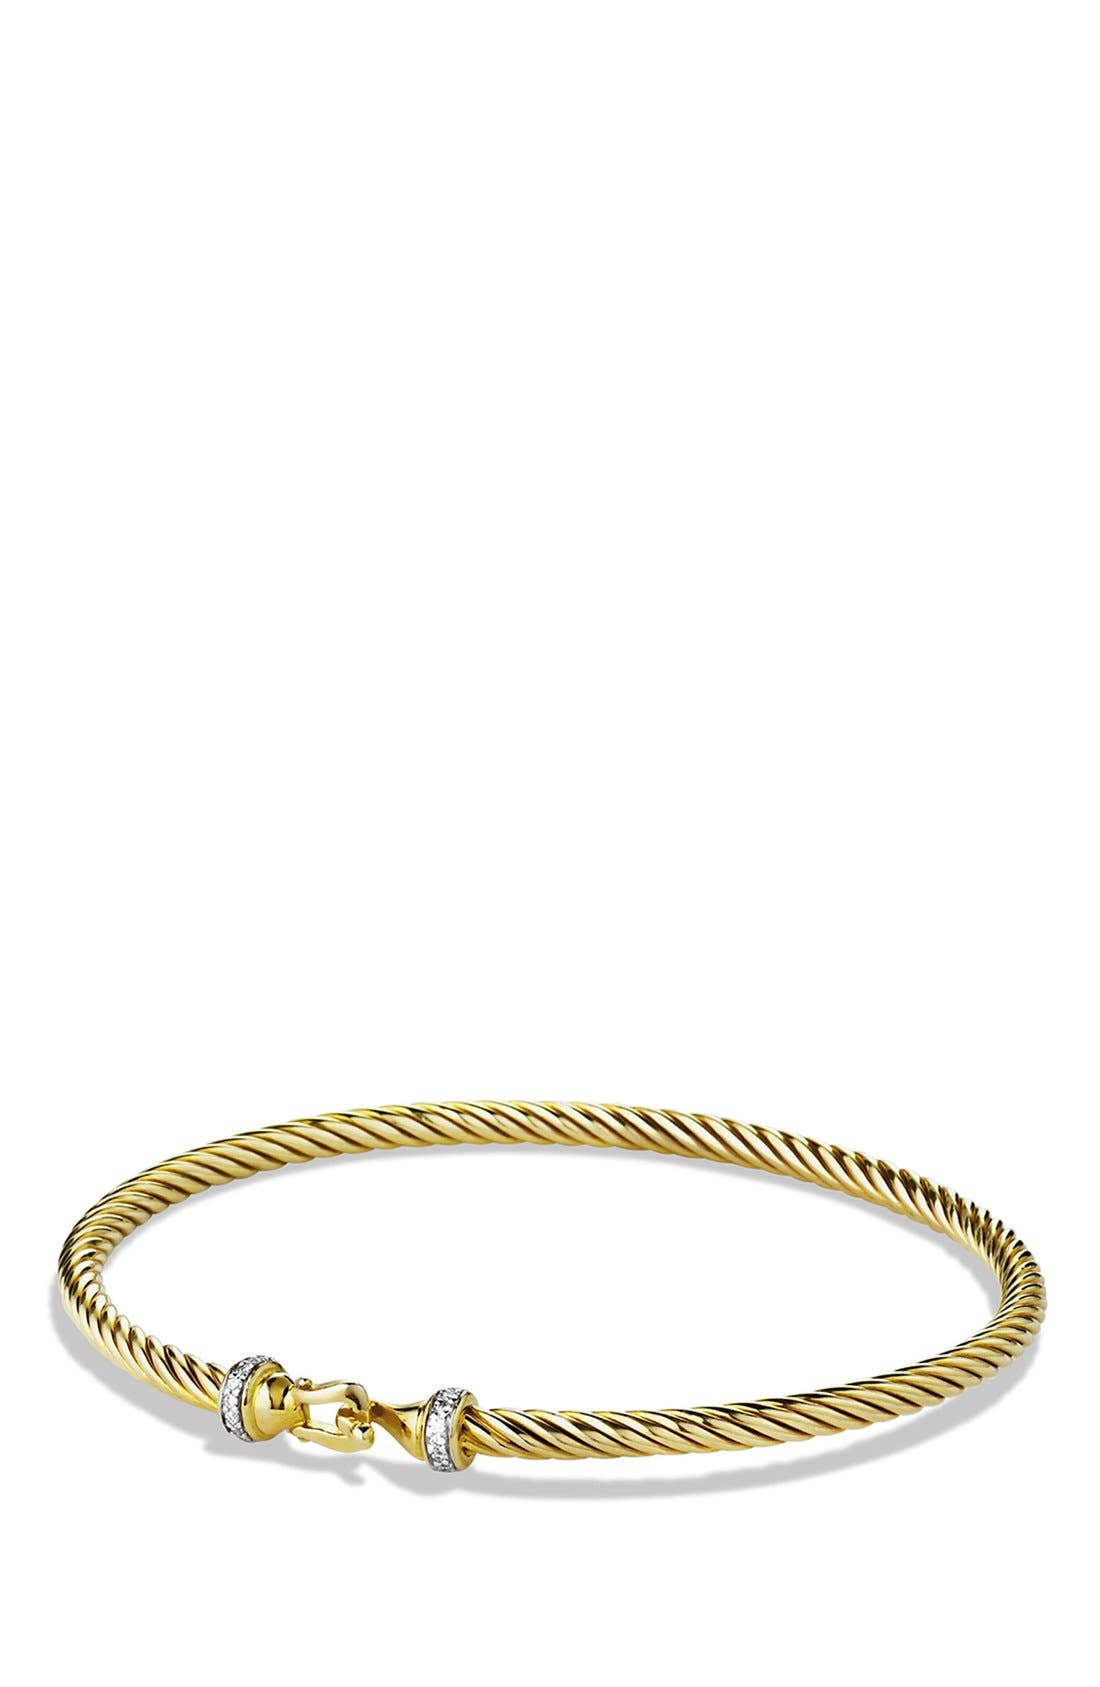 Main Image - David Yurman 'Cable Buckle' Bracelet with Diamonds in Gold